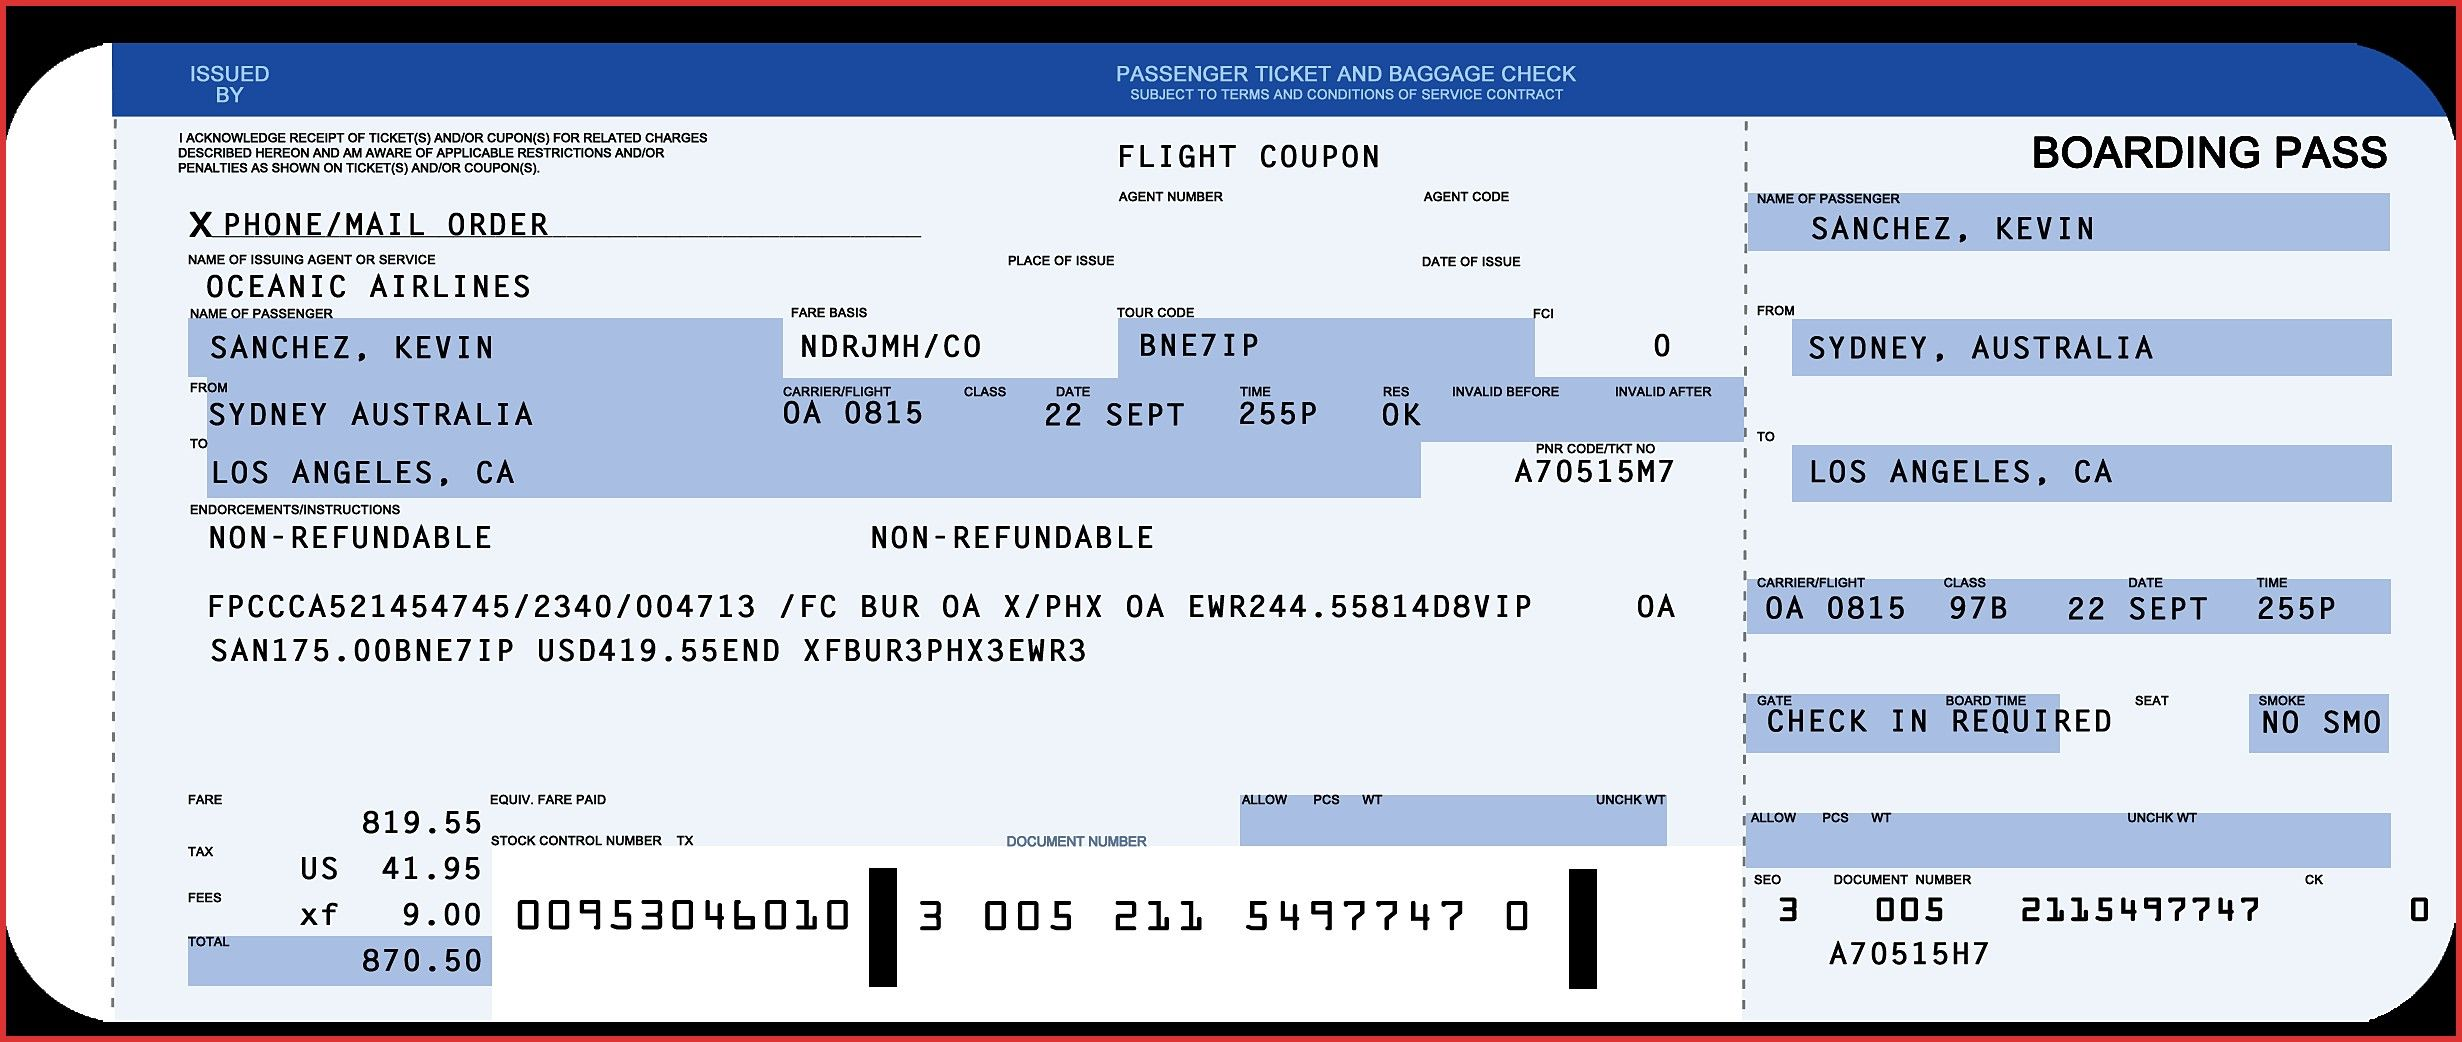 038 Template Ideas Vector Image Airline Boarding Pass Ticket.